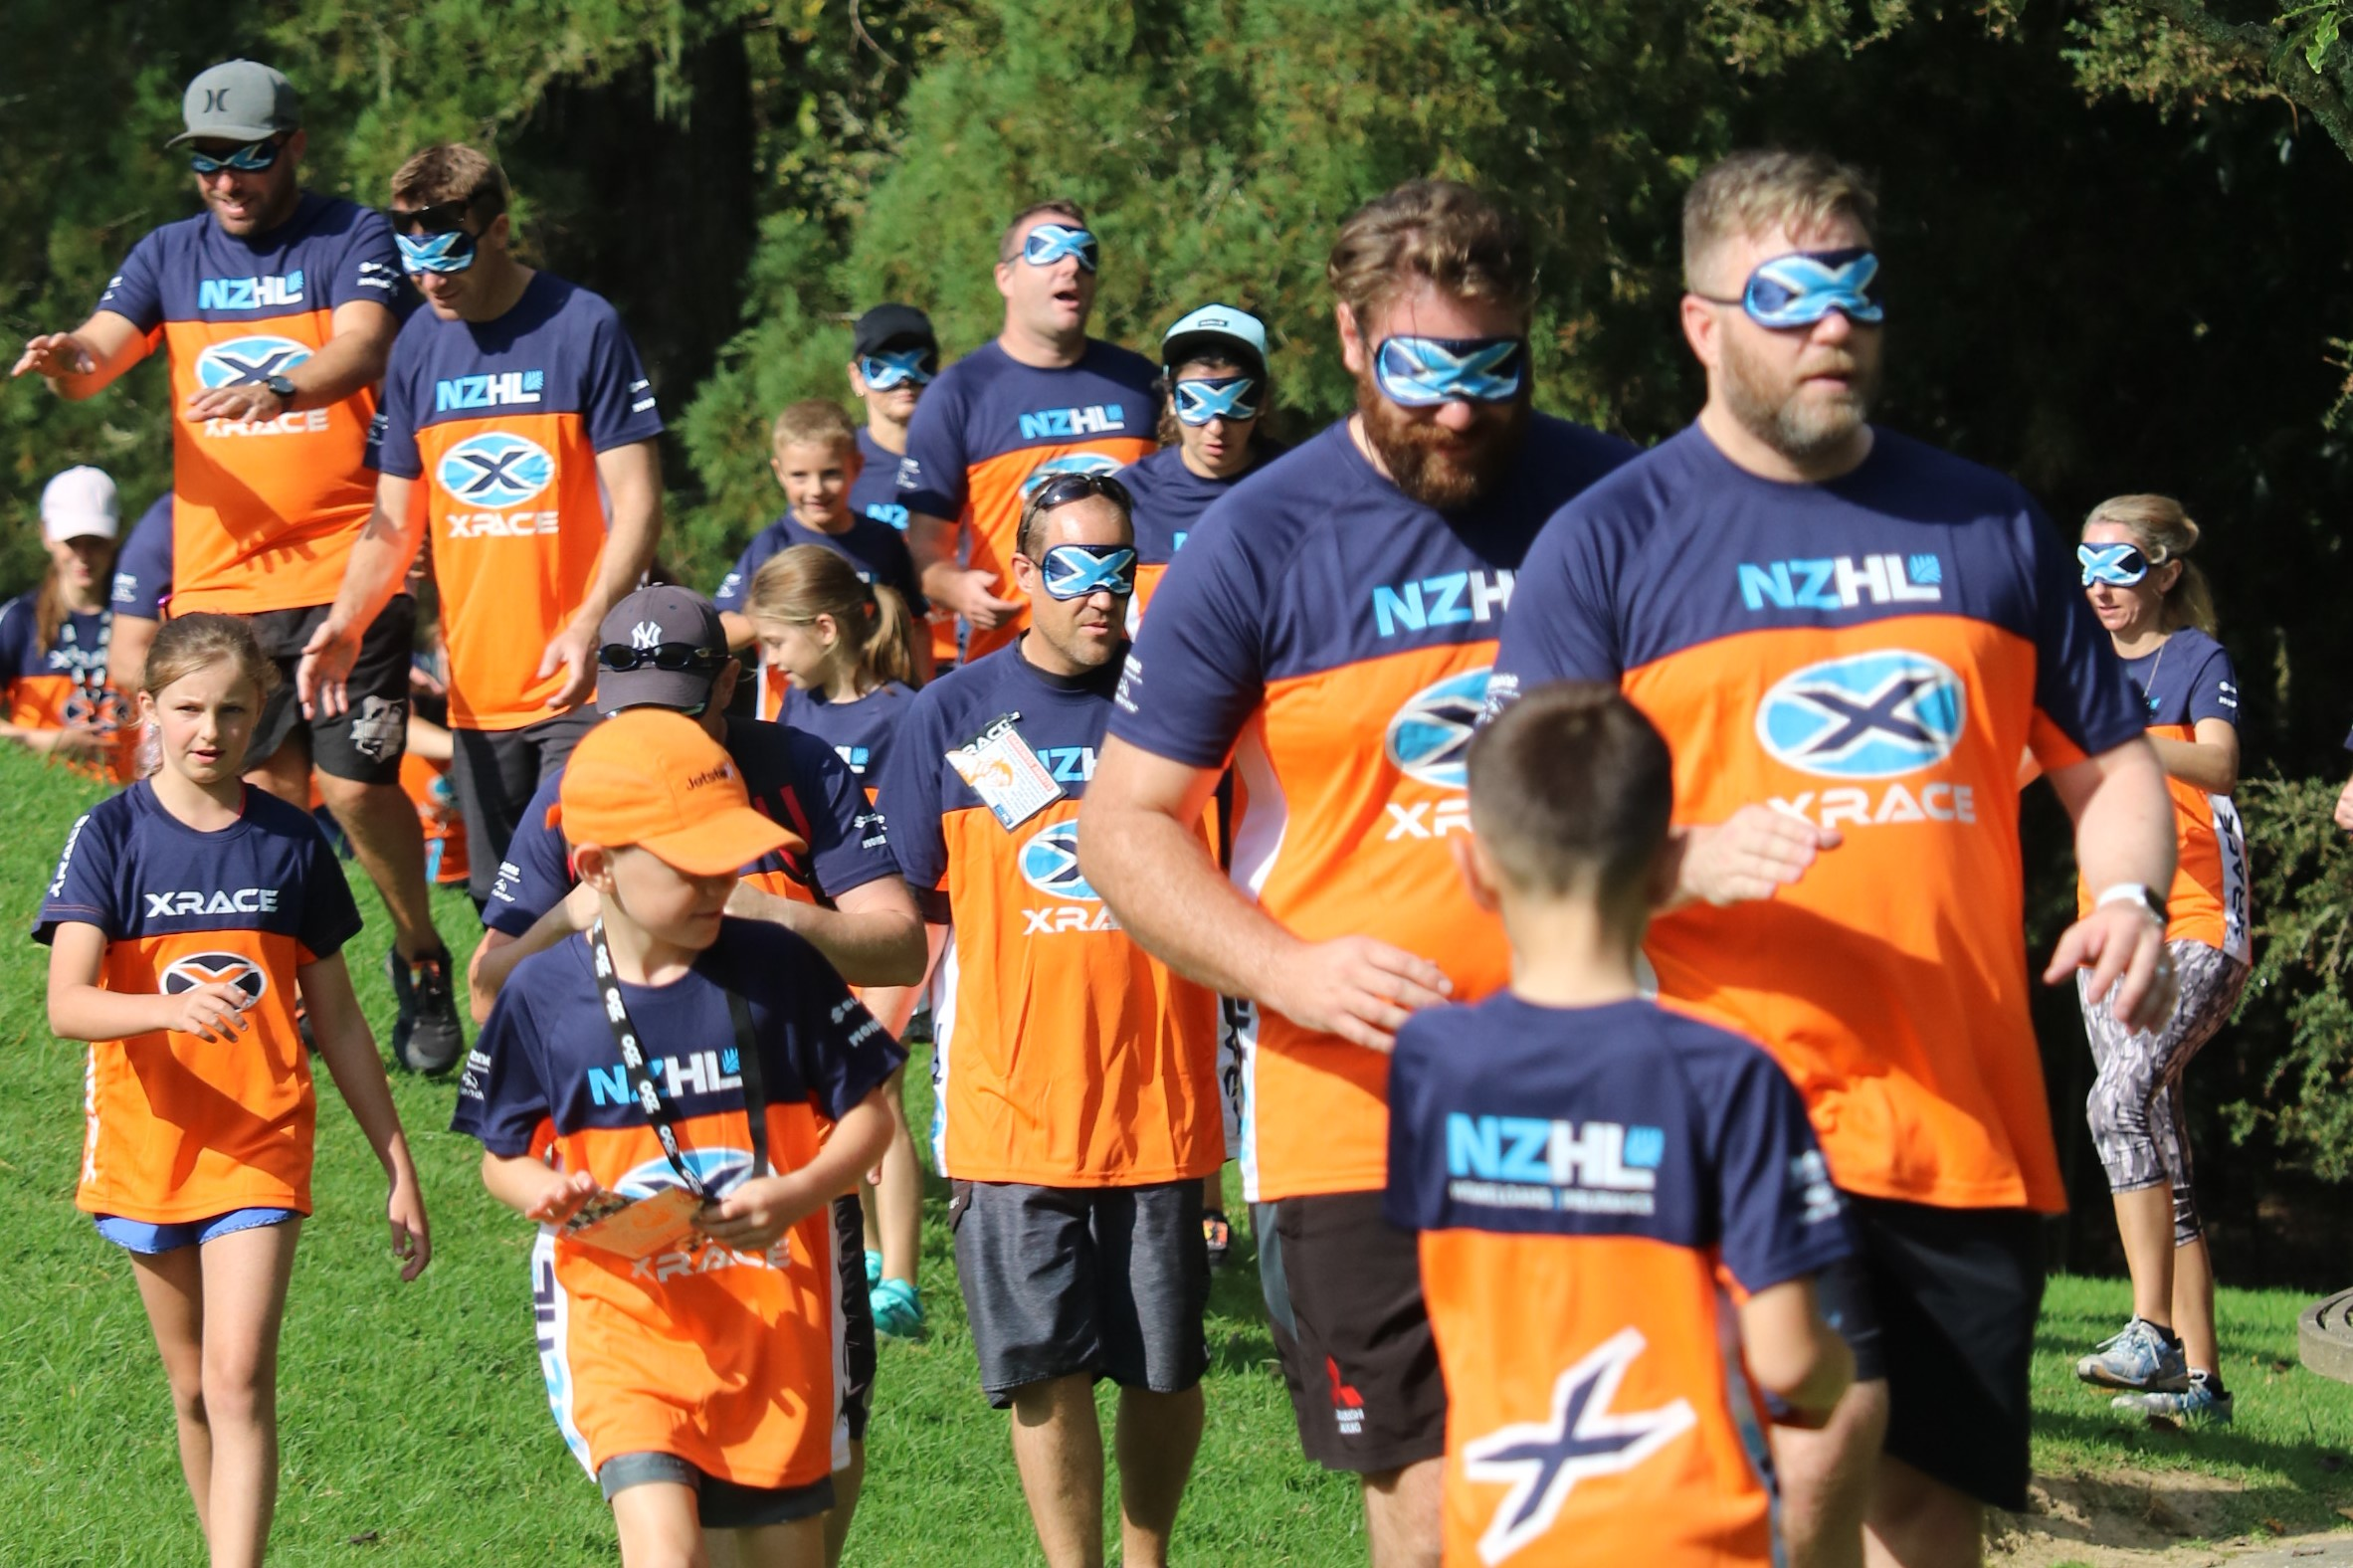 XRACE is like the Amazing Race for families. - XRACE teams are met with tricky but solvable roadblocks and obstacles – designed to strengthen self-esteem and confidence in children. XRACE is all about building more resilient kids and above all else, strengthen the bonds between a dad and son or a mum and her daughter.